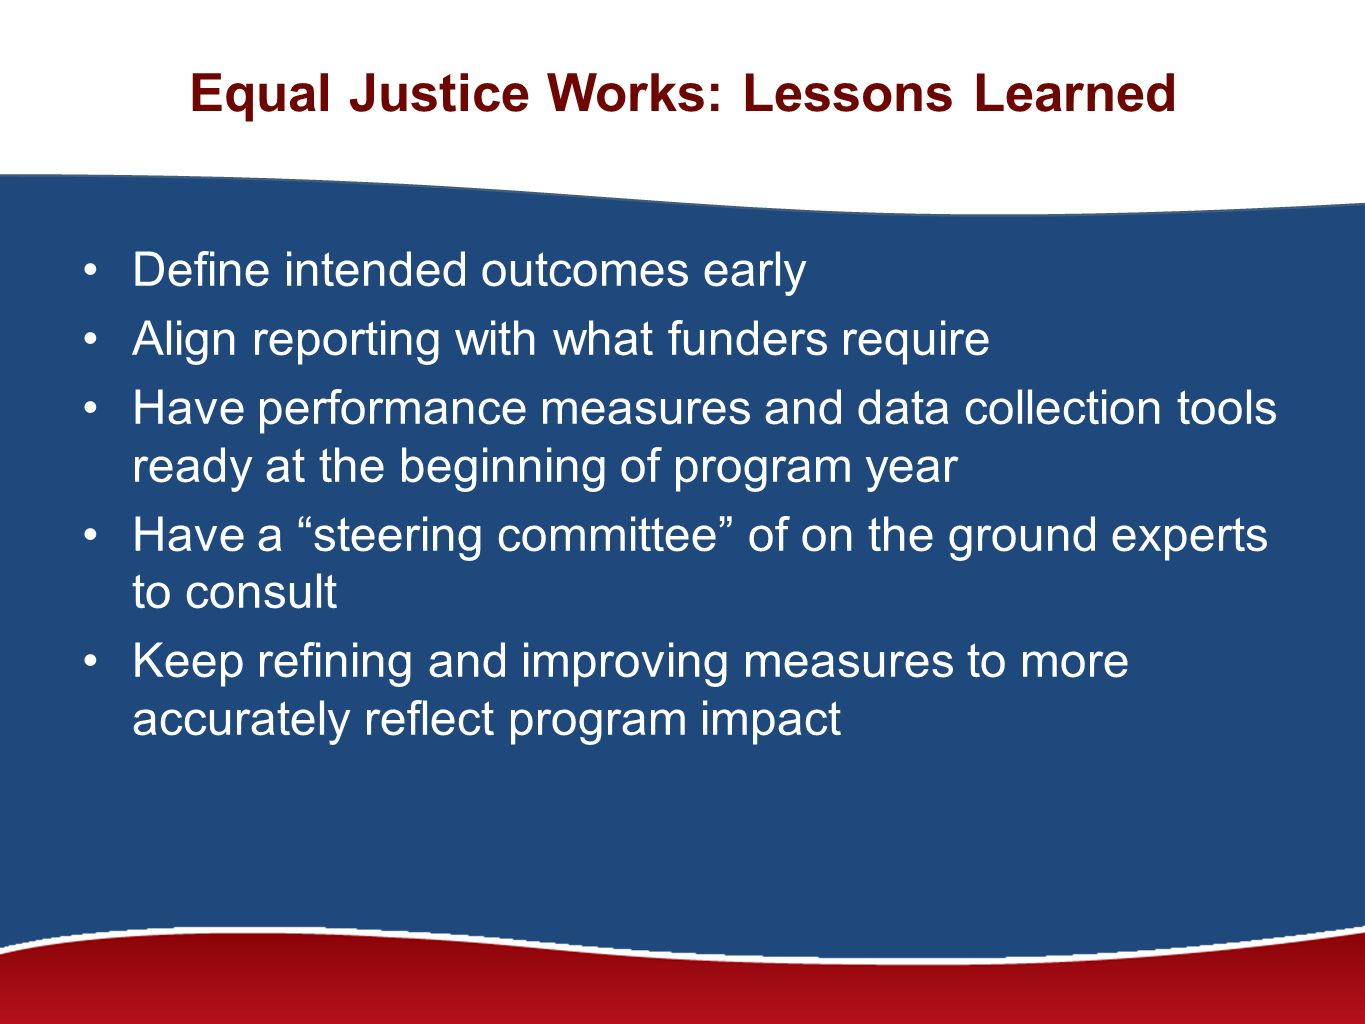 Equal Justice Works: Lessons Learned Define intended outcomes early Align reporting with what funders require Have performance measures and data collection tools ready at the beginning of program year Have a steering committee of on the ground experts to consult Keep refining and improving measures to more accurately reflect program impact